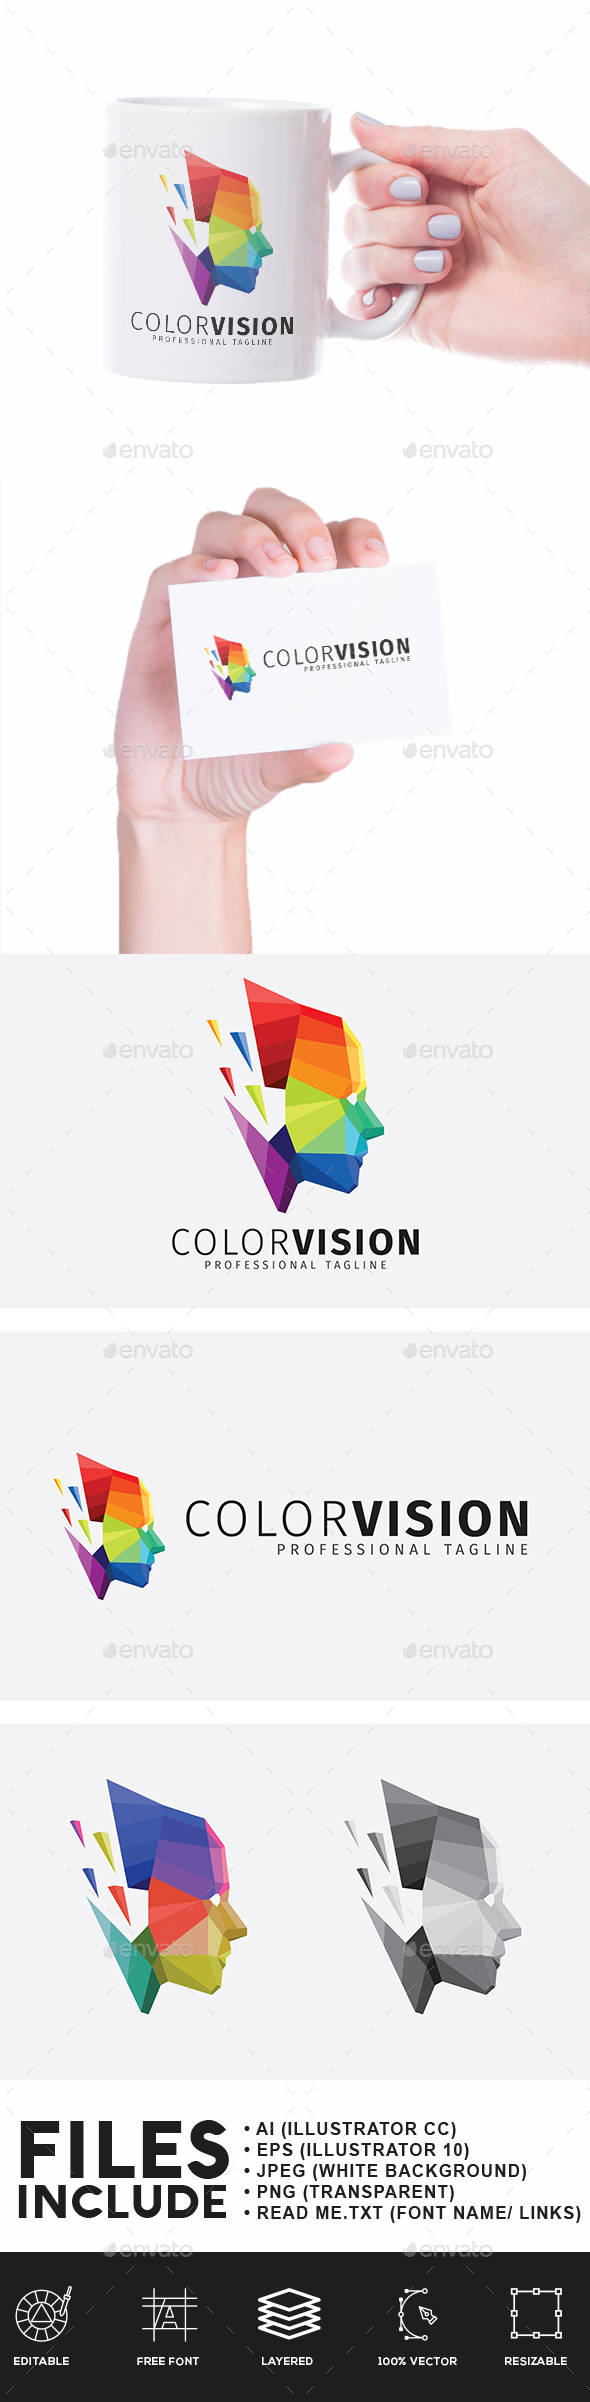 Color Vision Low Poly Logo